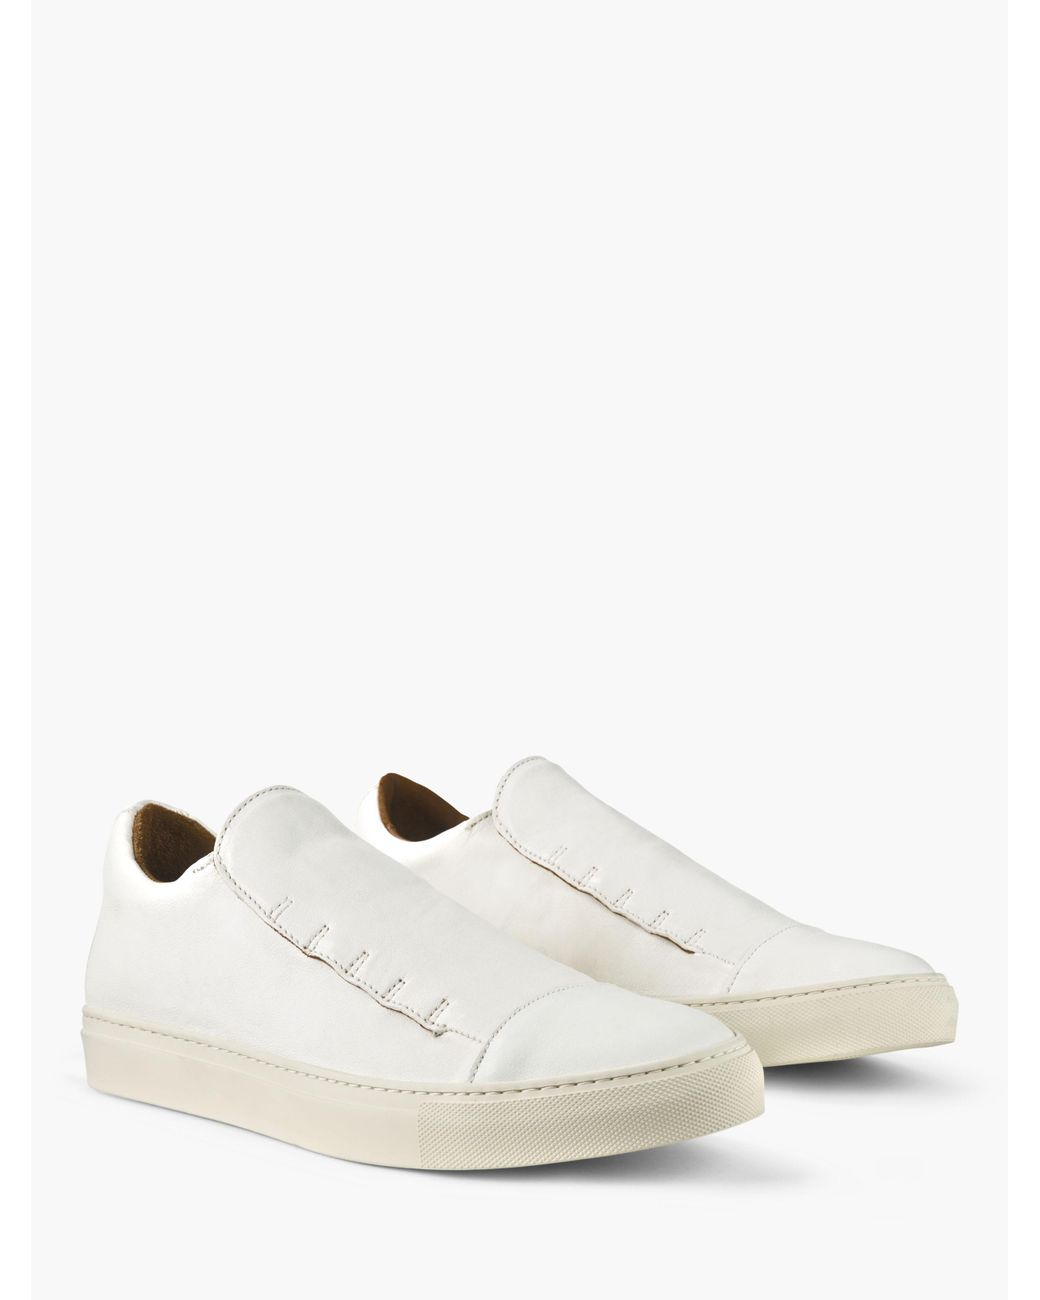 8a4f91f1a293 Lyst - John Varvatos Reed Laceless Low Top Sneaker in White for Men ...